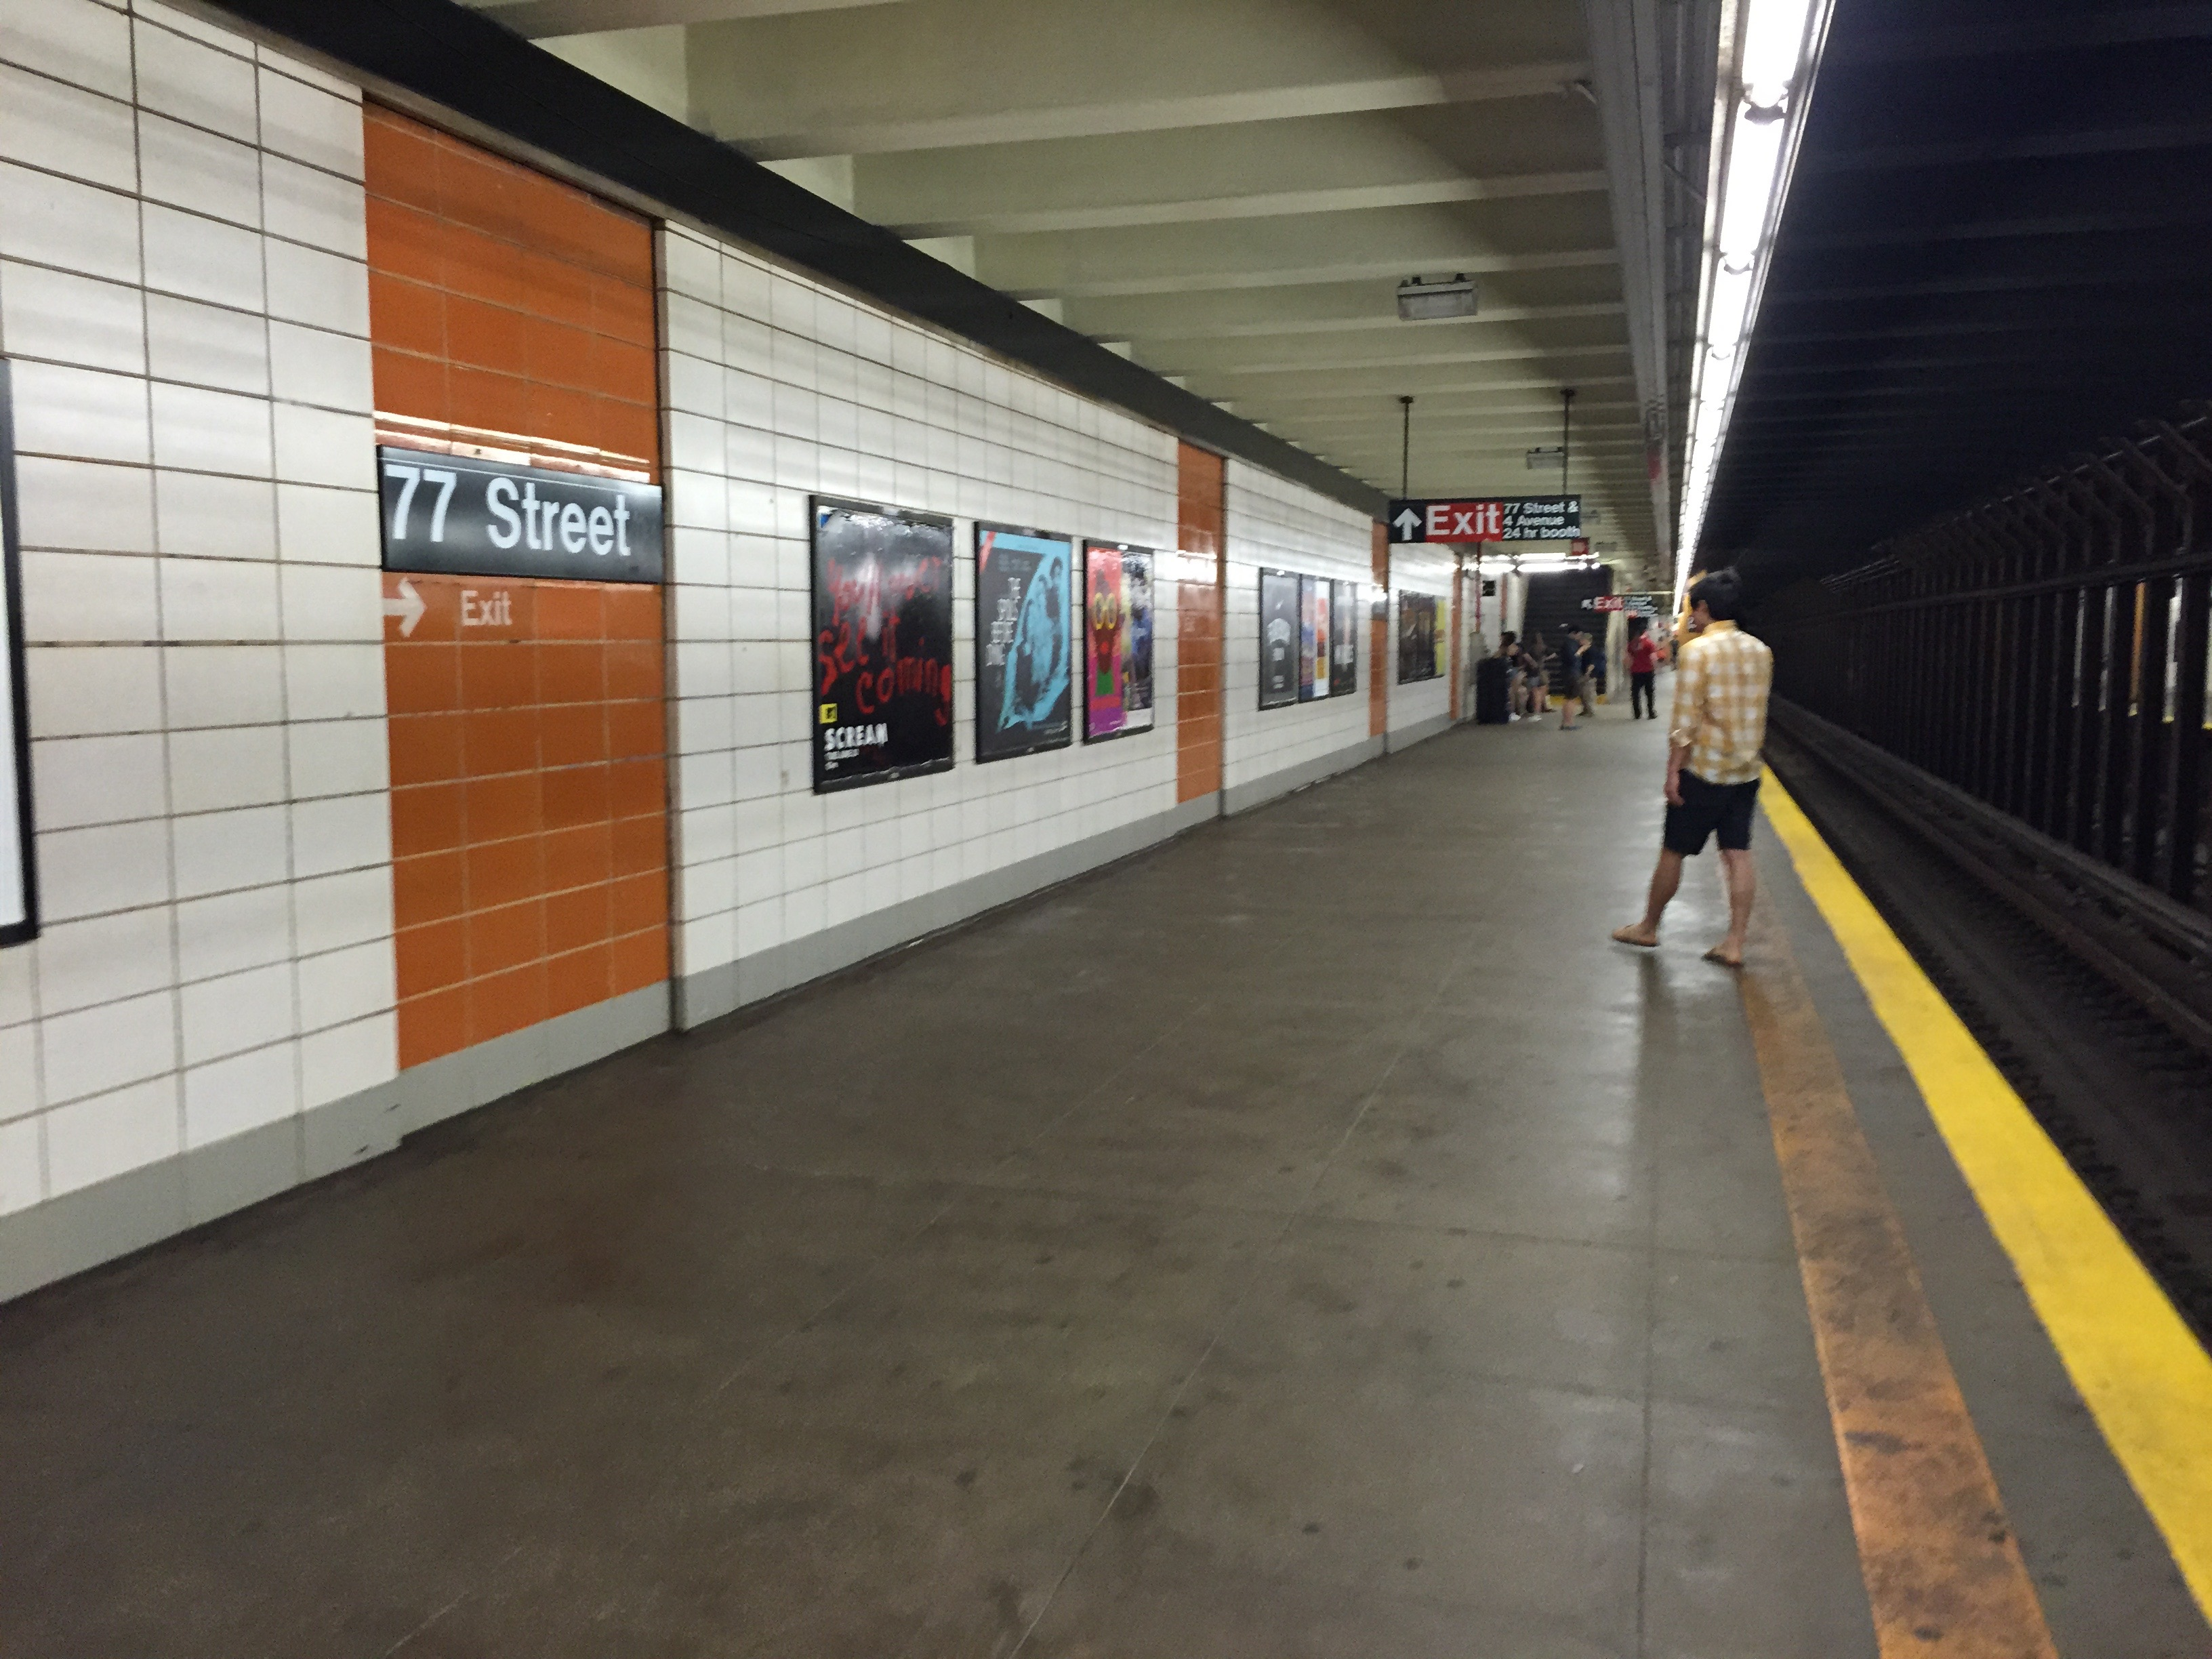 Subway Map 77 Street.77th Street Station Bmt Fourth Avenue Line Wikipedia